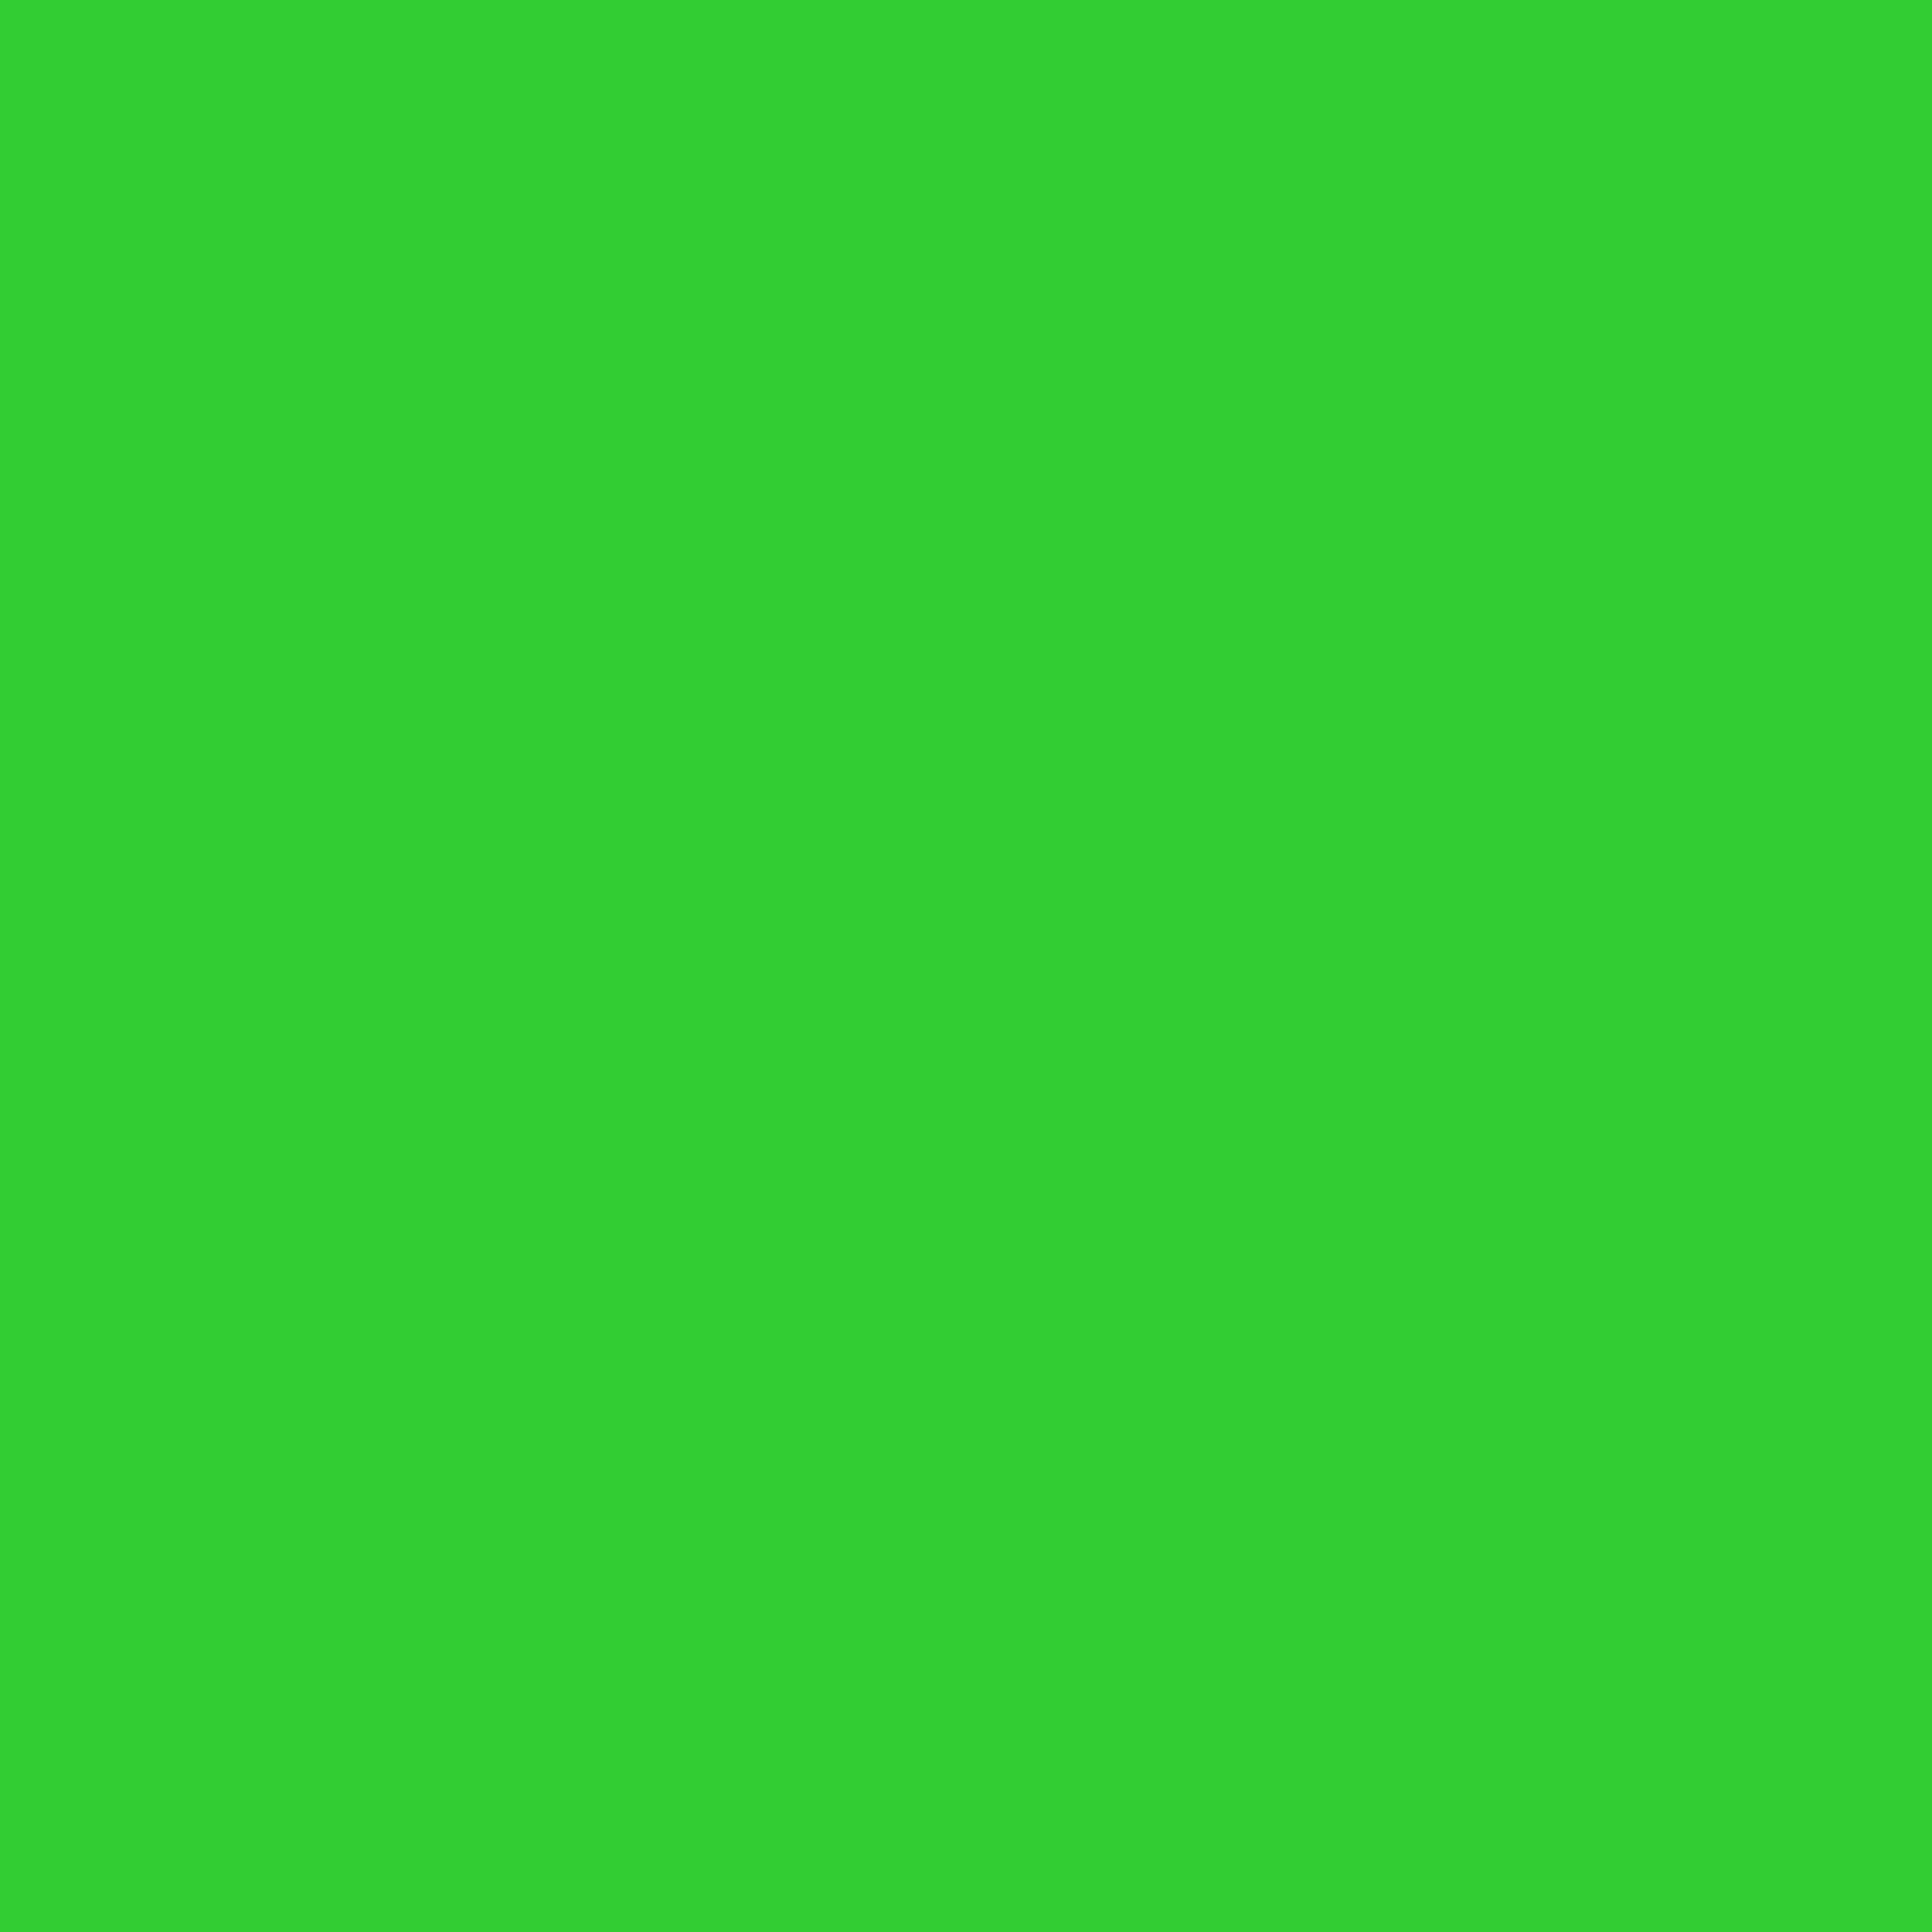 2732x2732 Lime Green Solid Color Background